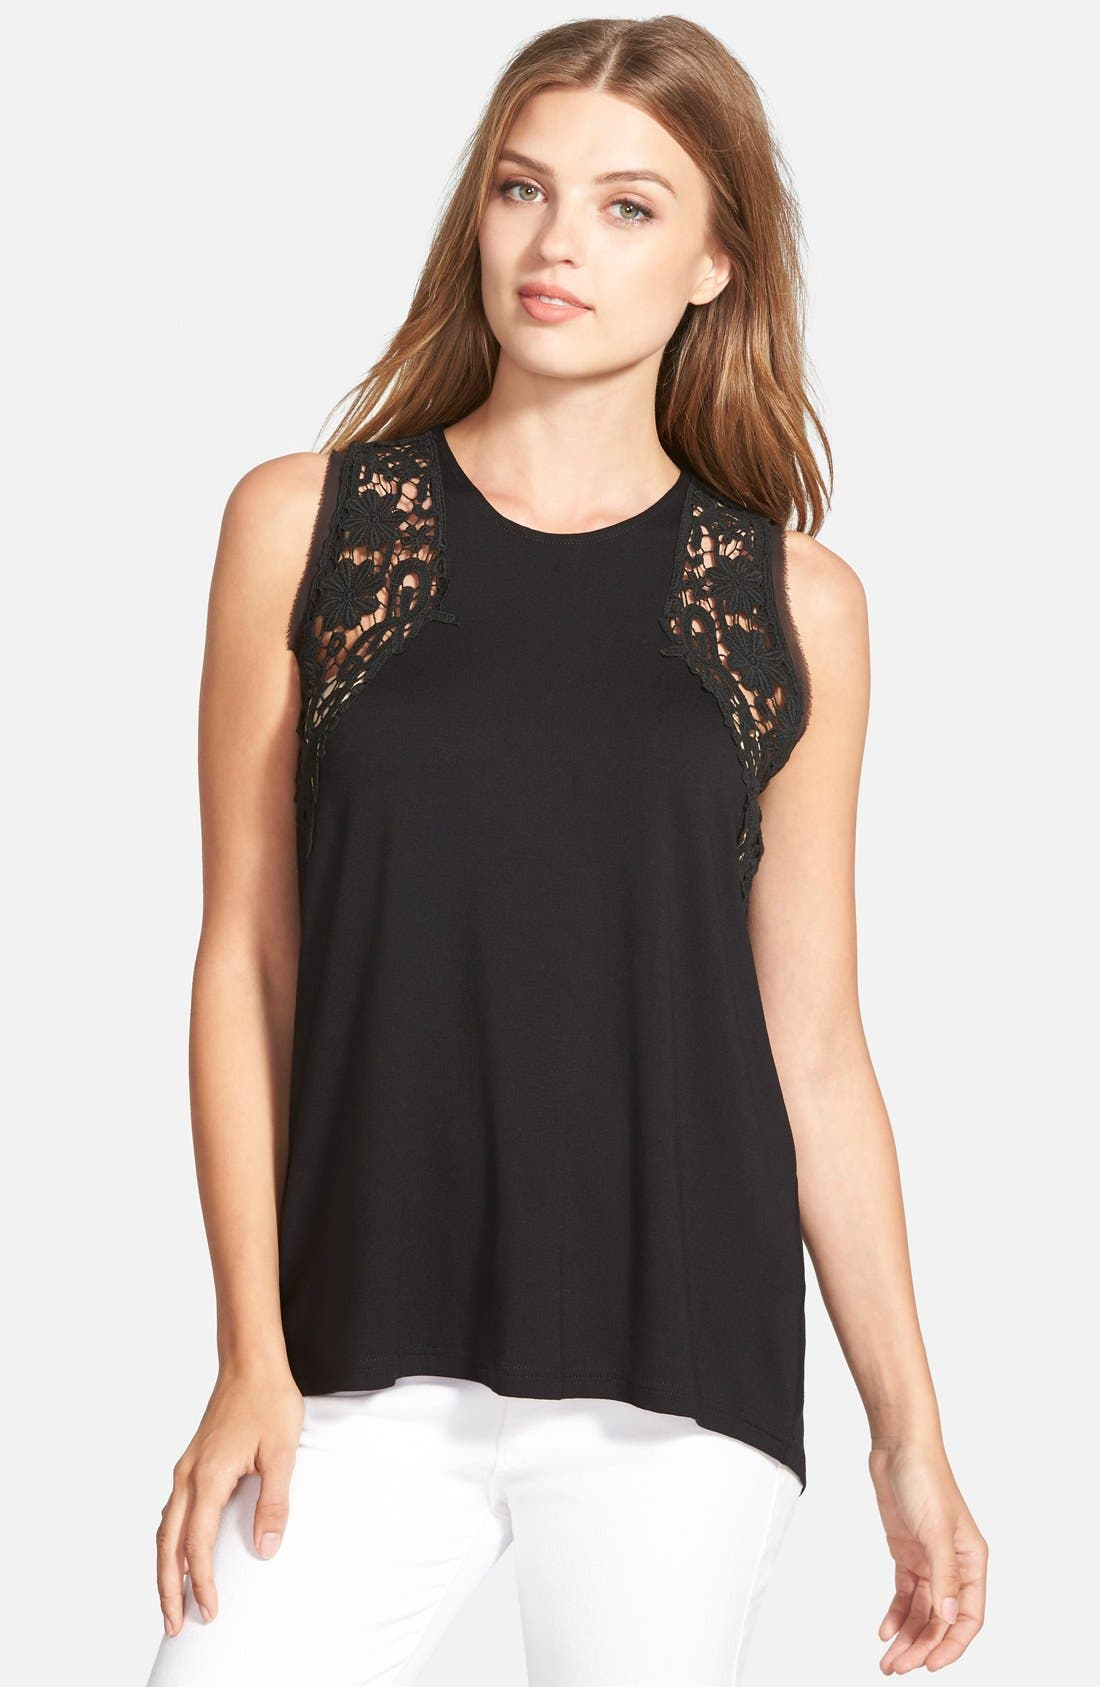 Alternate Image 1 Selected - Vince Camuto Lace Inset Sleeveless Top